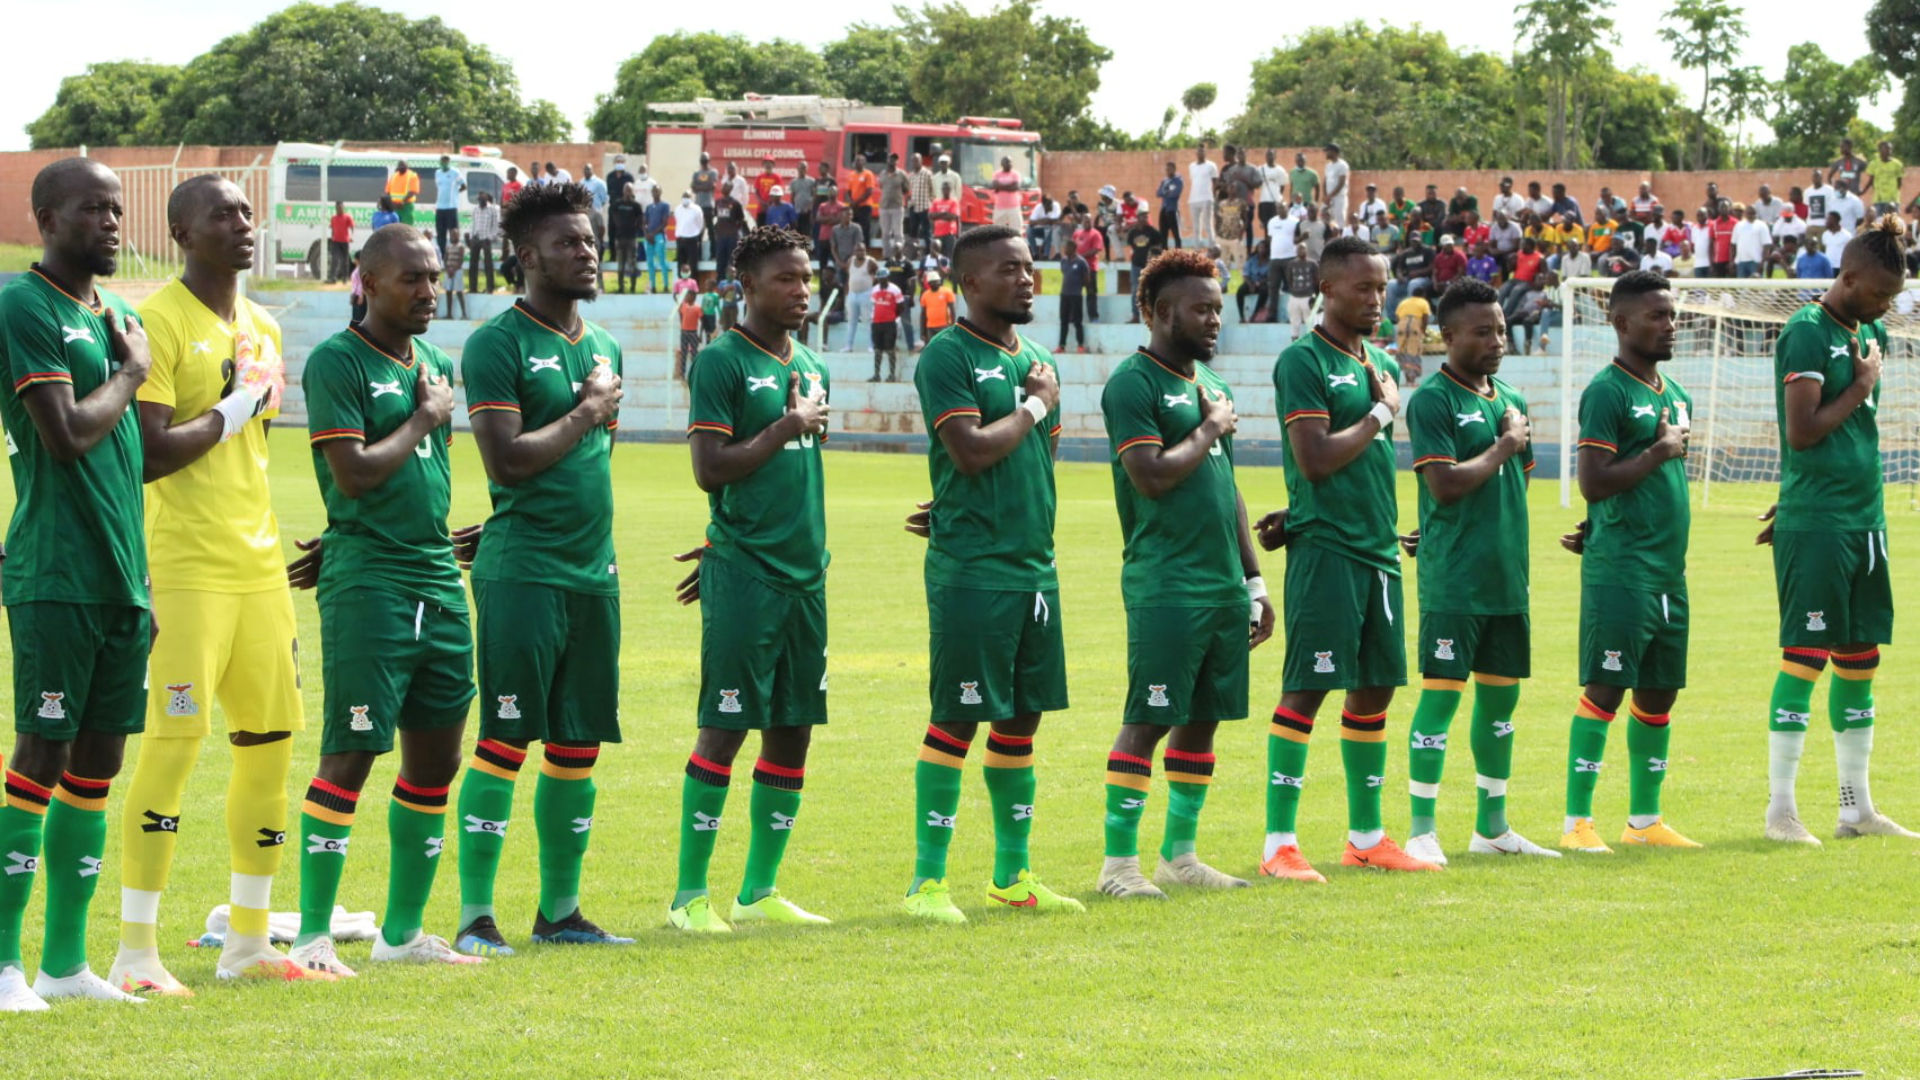 Sredojevic explains why fans took part in Zambia's Chan squad selection